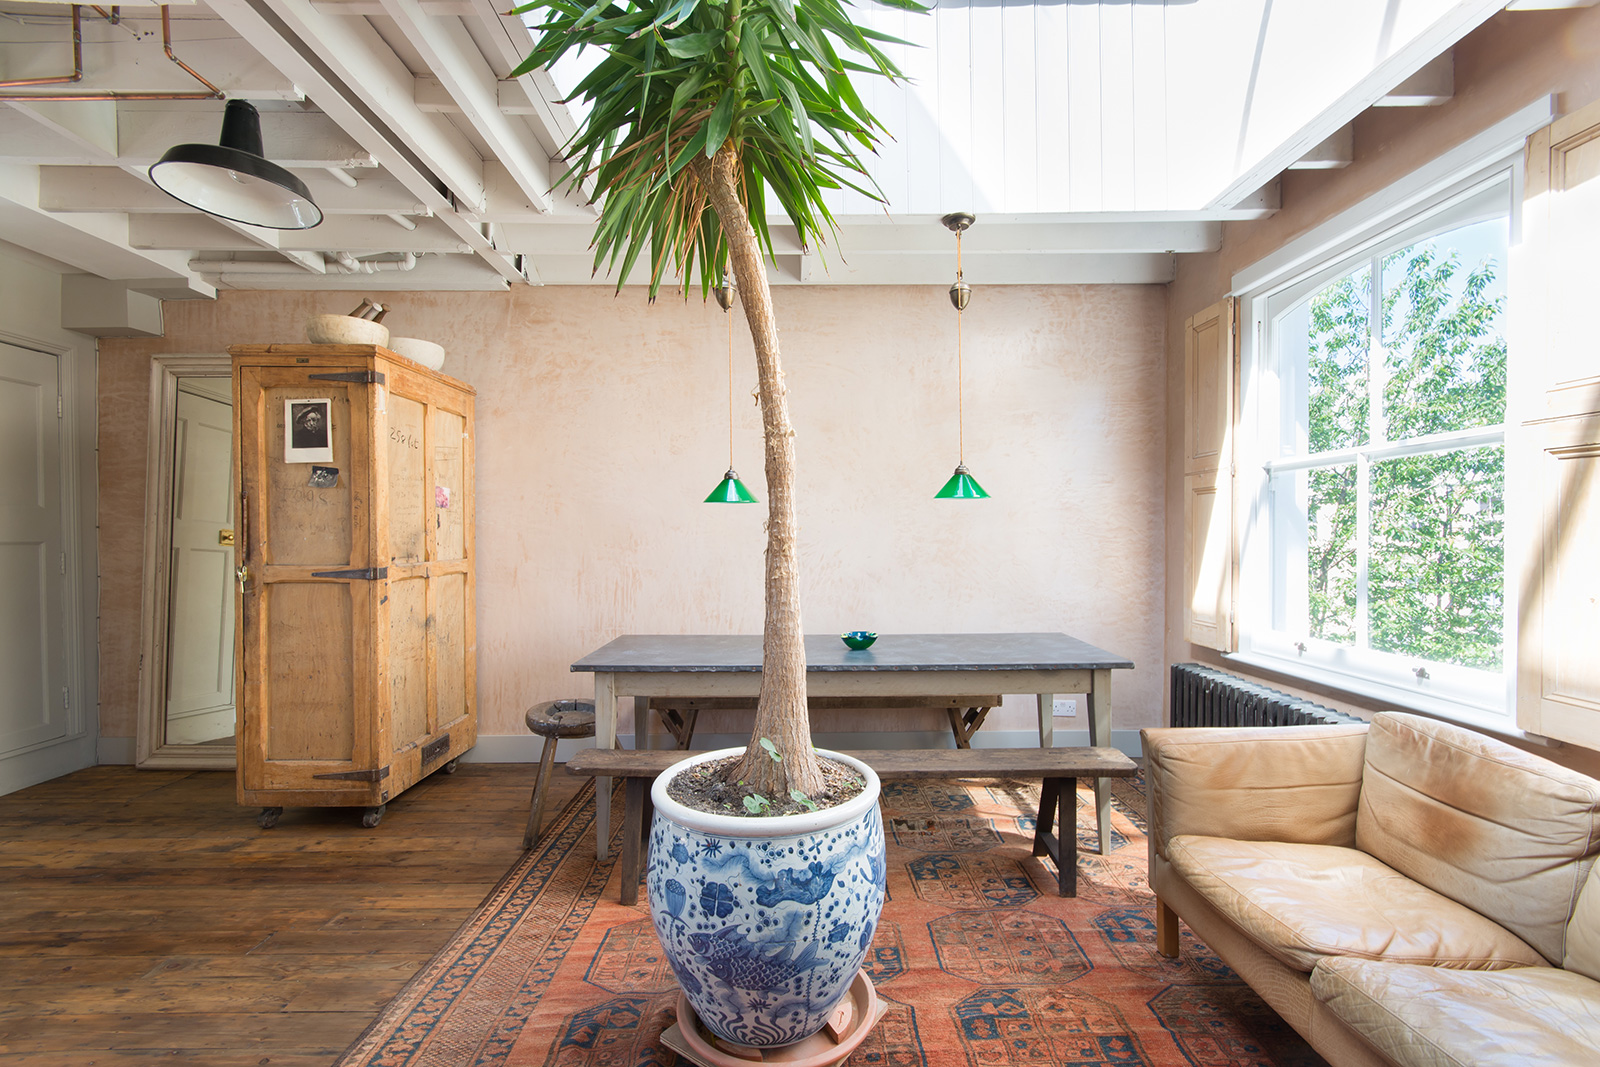 Chesterton Road property for rent in London